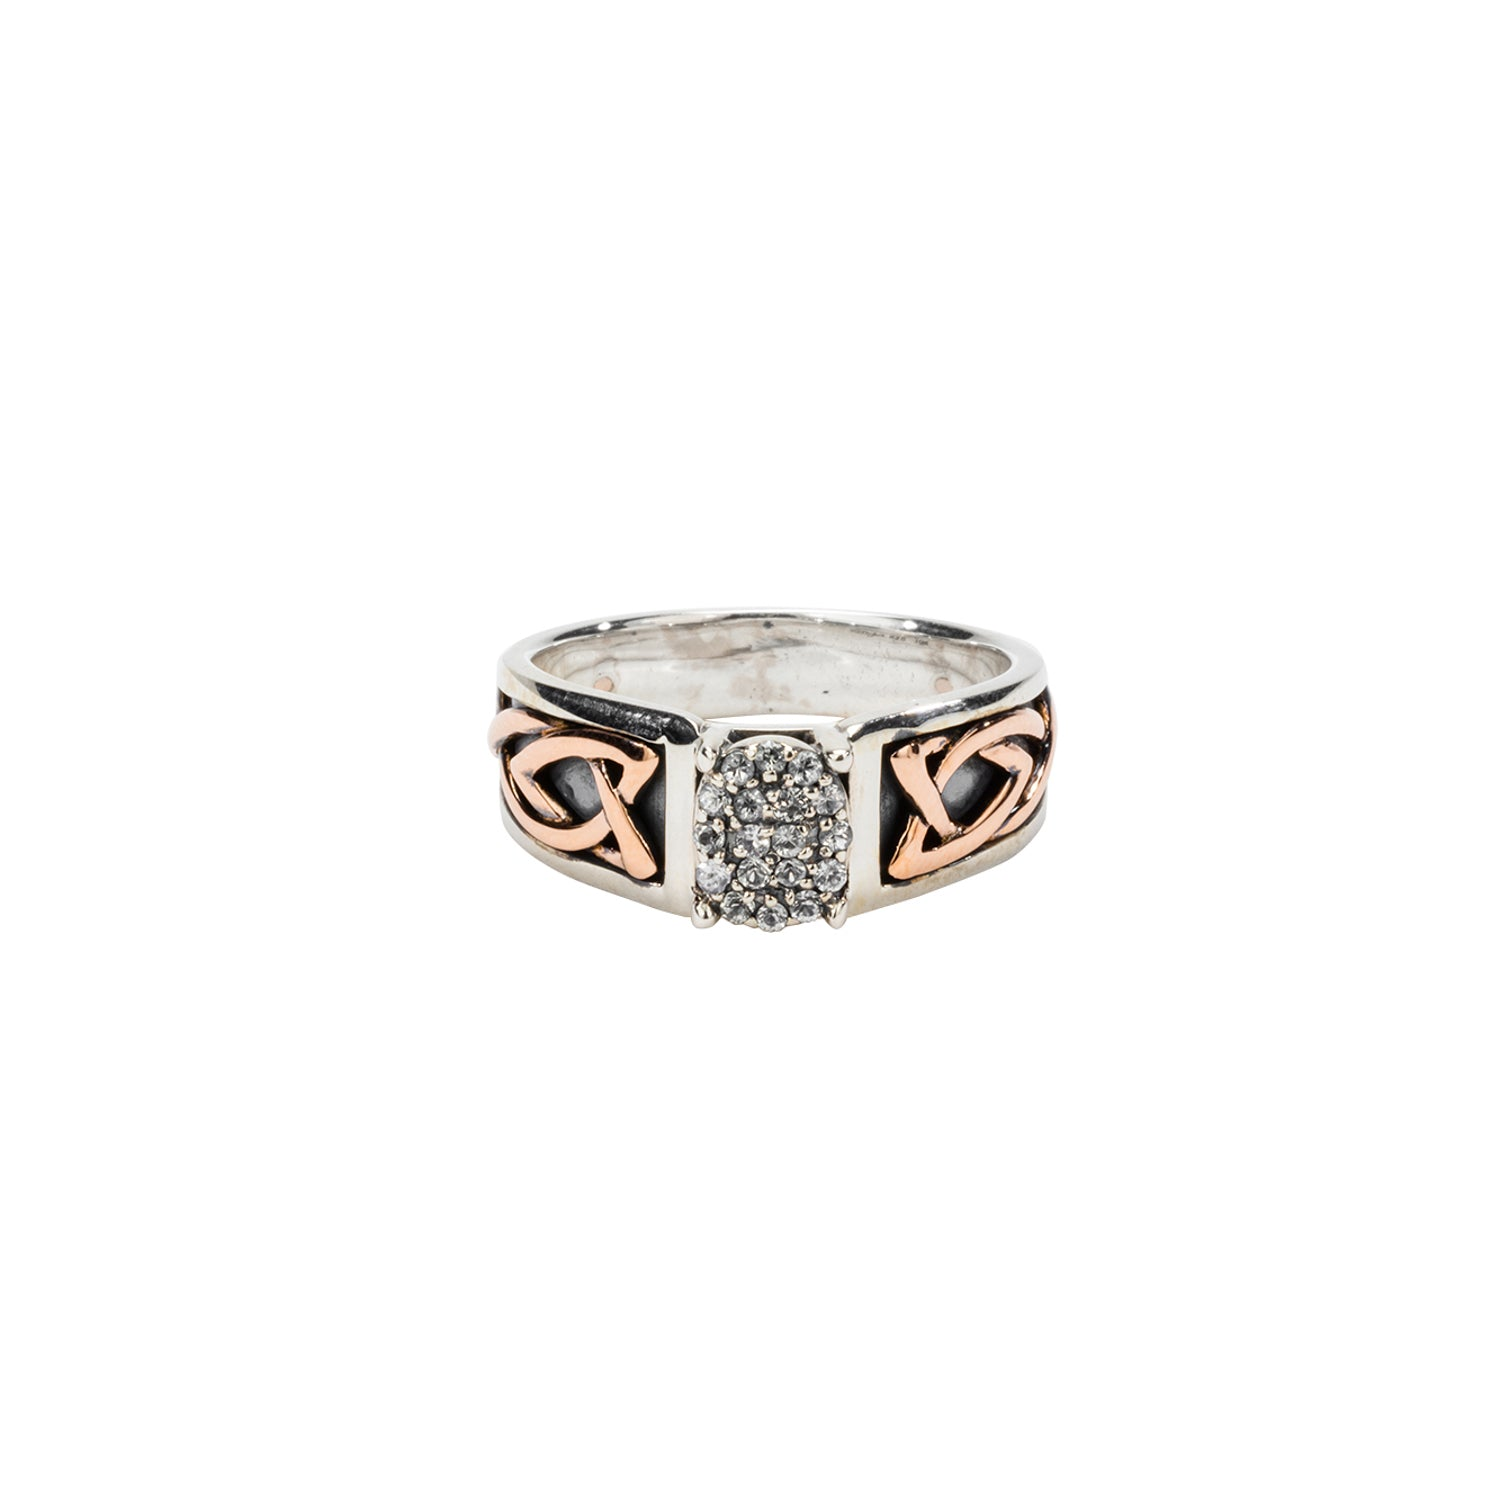 "Ring Bands Oxidized 10k Rose White Sapphire ""Eden"" Ring (Tapered) from welch and company jewelers near syracuse ny"